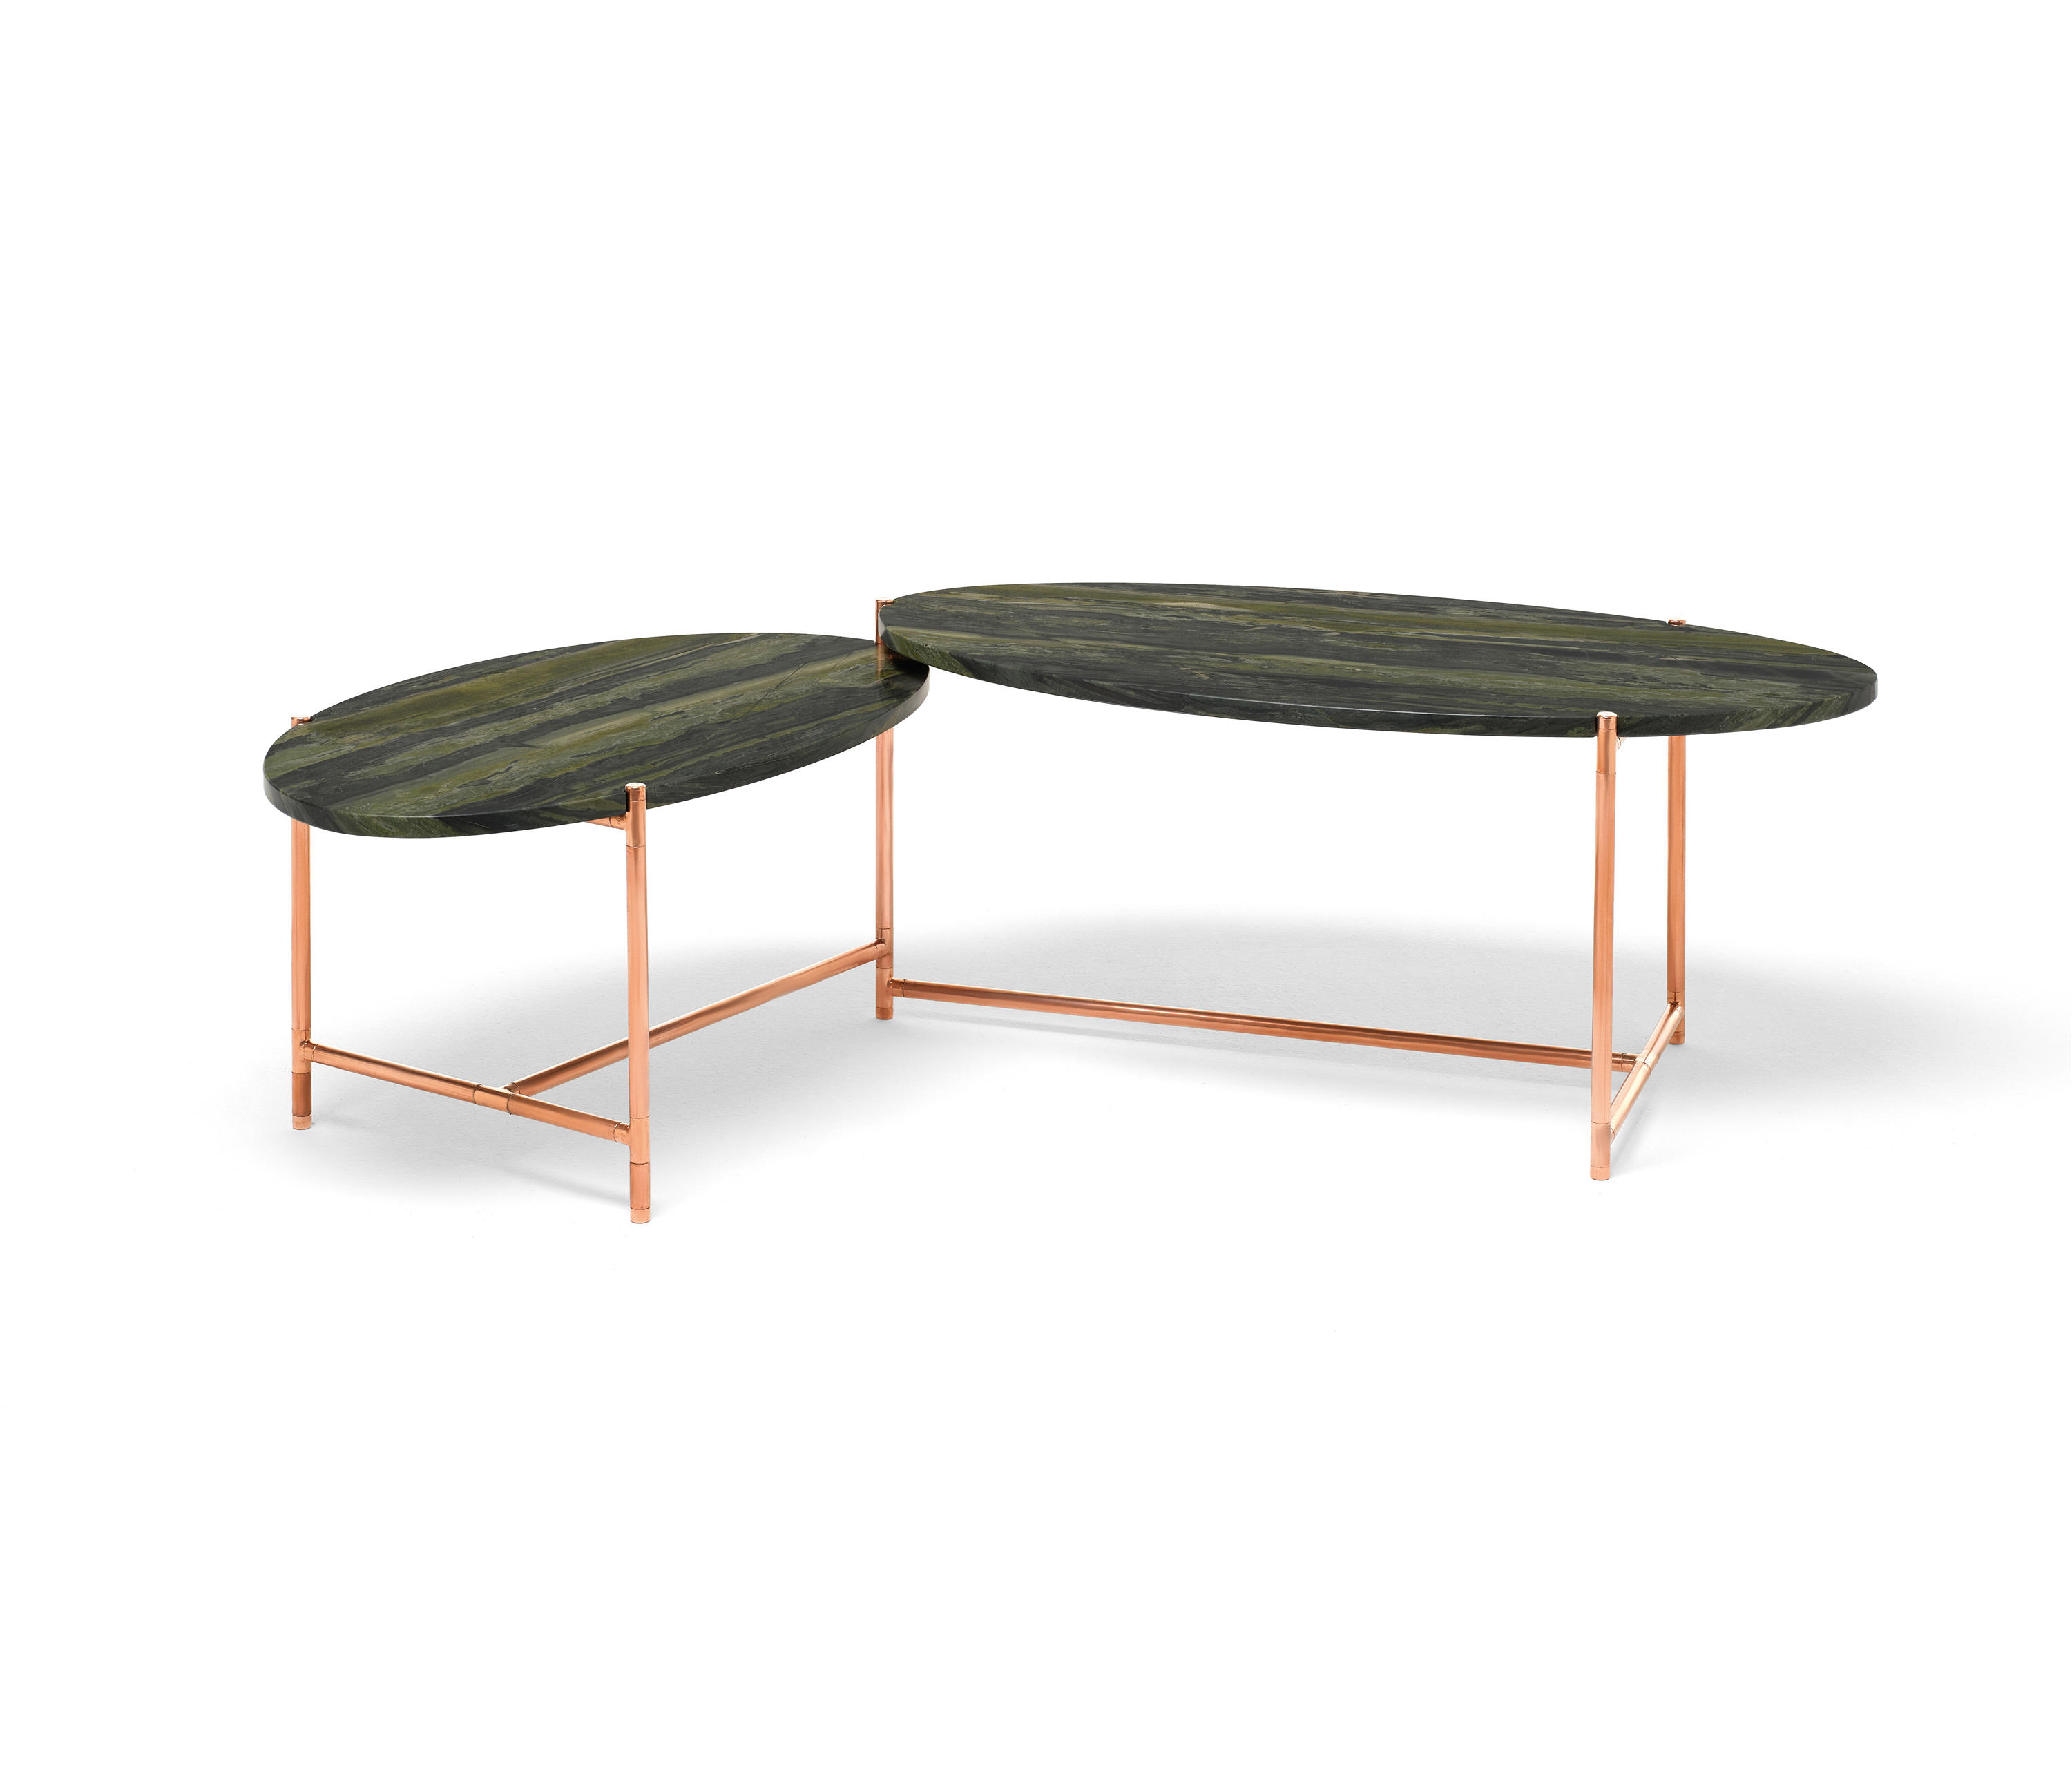 Super Big Sur Coffee Table Designer Furniture Architonic Onthecornerstone Fun Painted Chair Ideas Images Onthecornerstoneorg